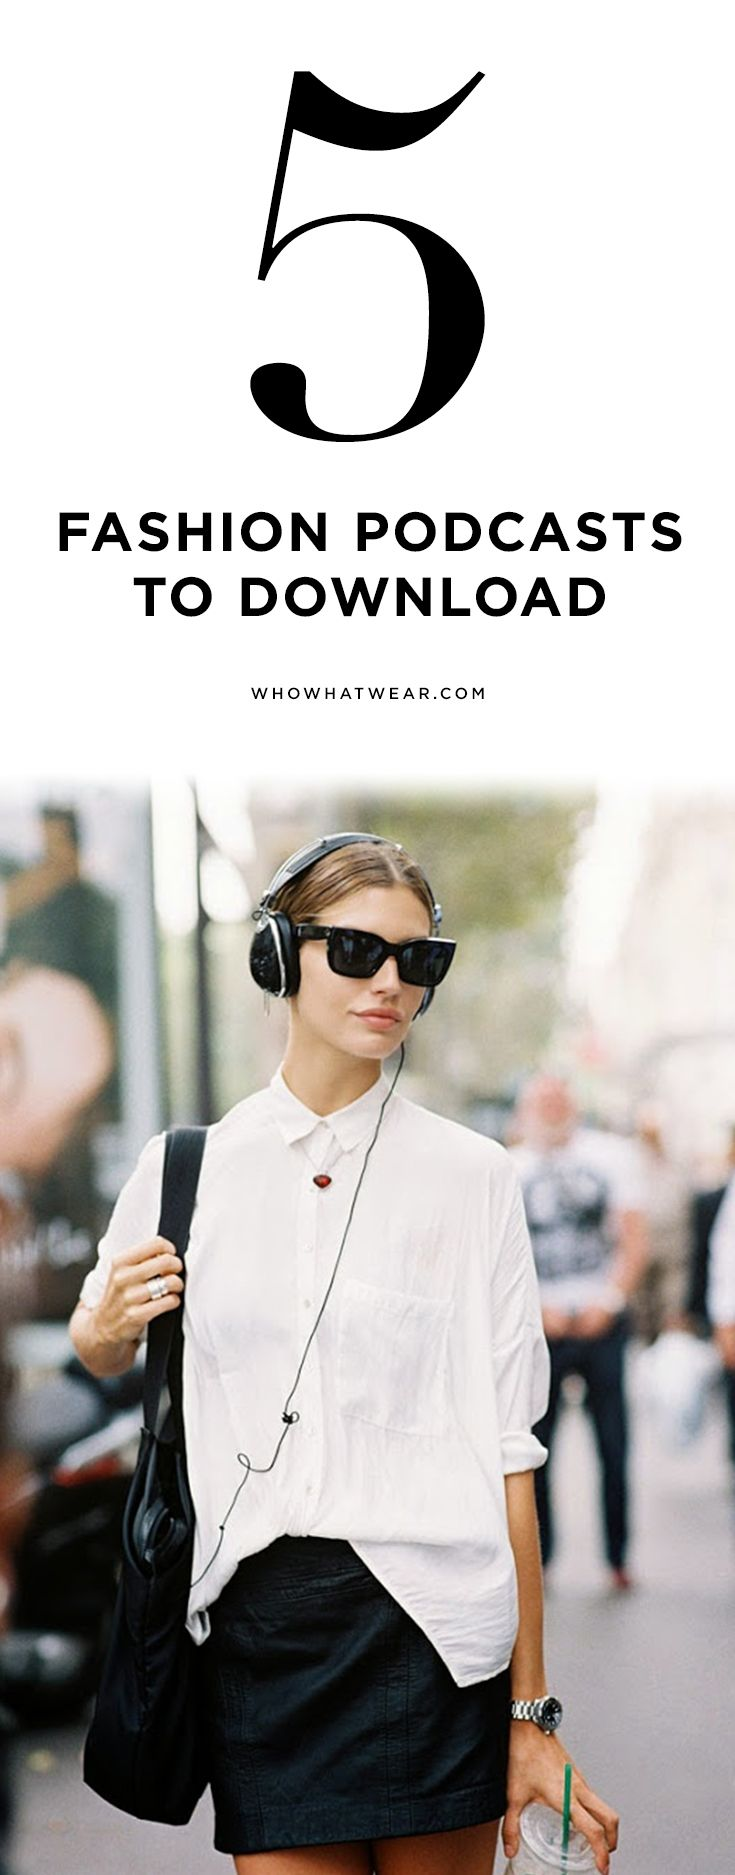 The 5 best fashion podcasts to download for your daily commute.